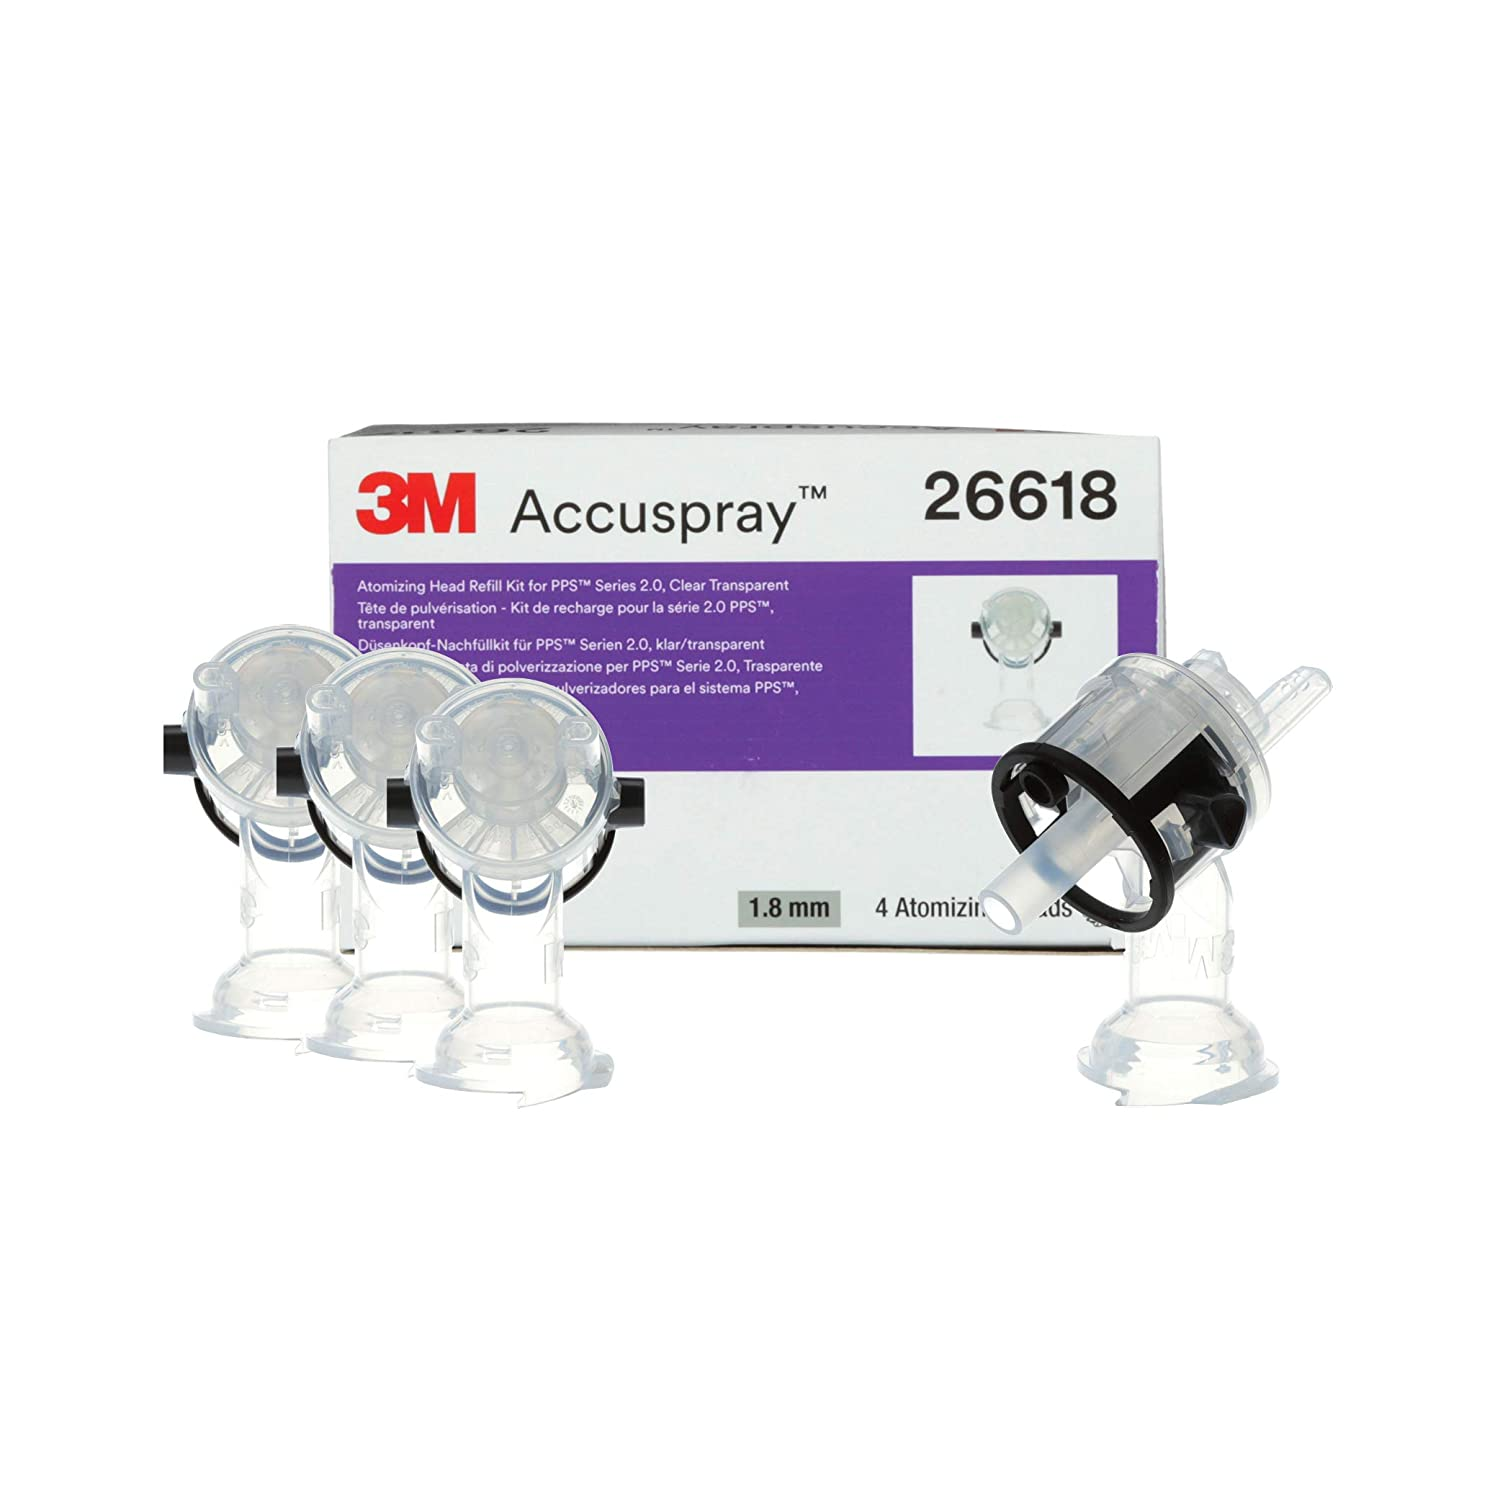 3M Accuspray Atomizing Head Refill Pack PPS Series 2.0, 26618, Clear, 1.8 mm, 4 nozzles per Pack